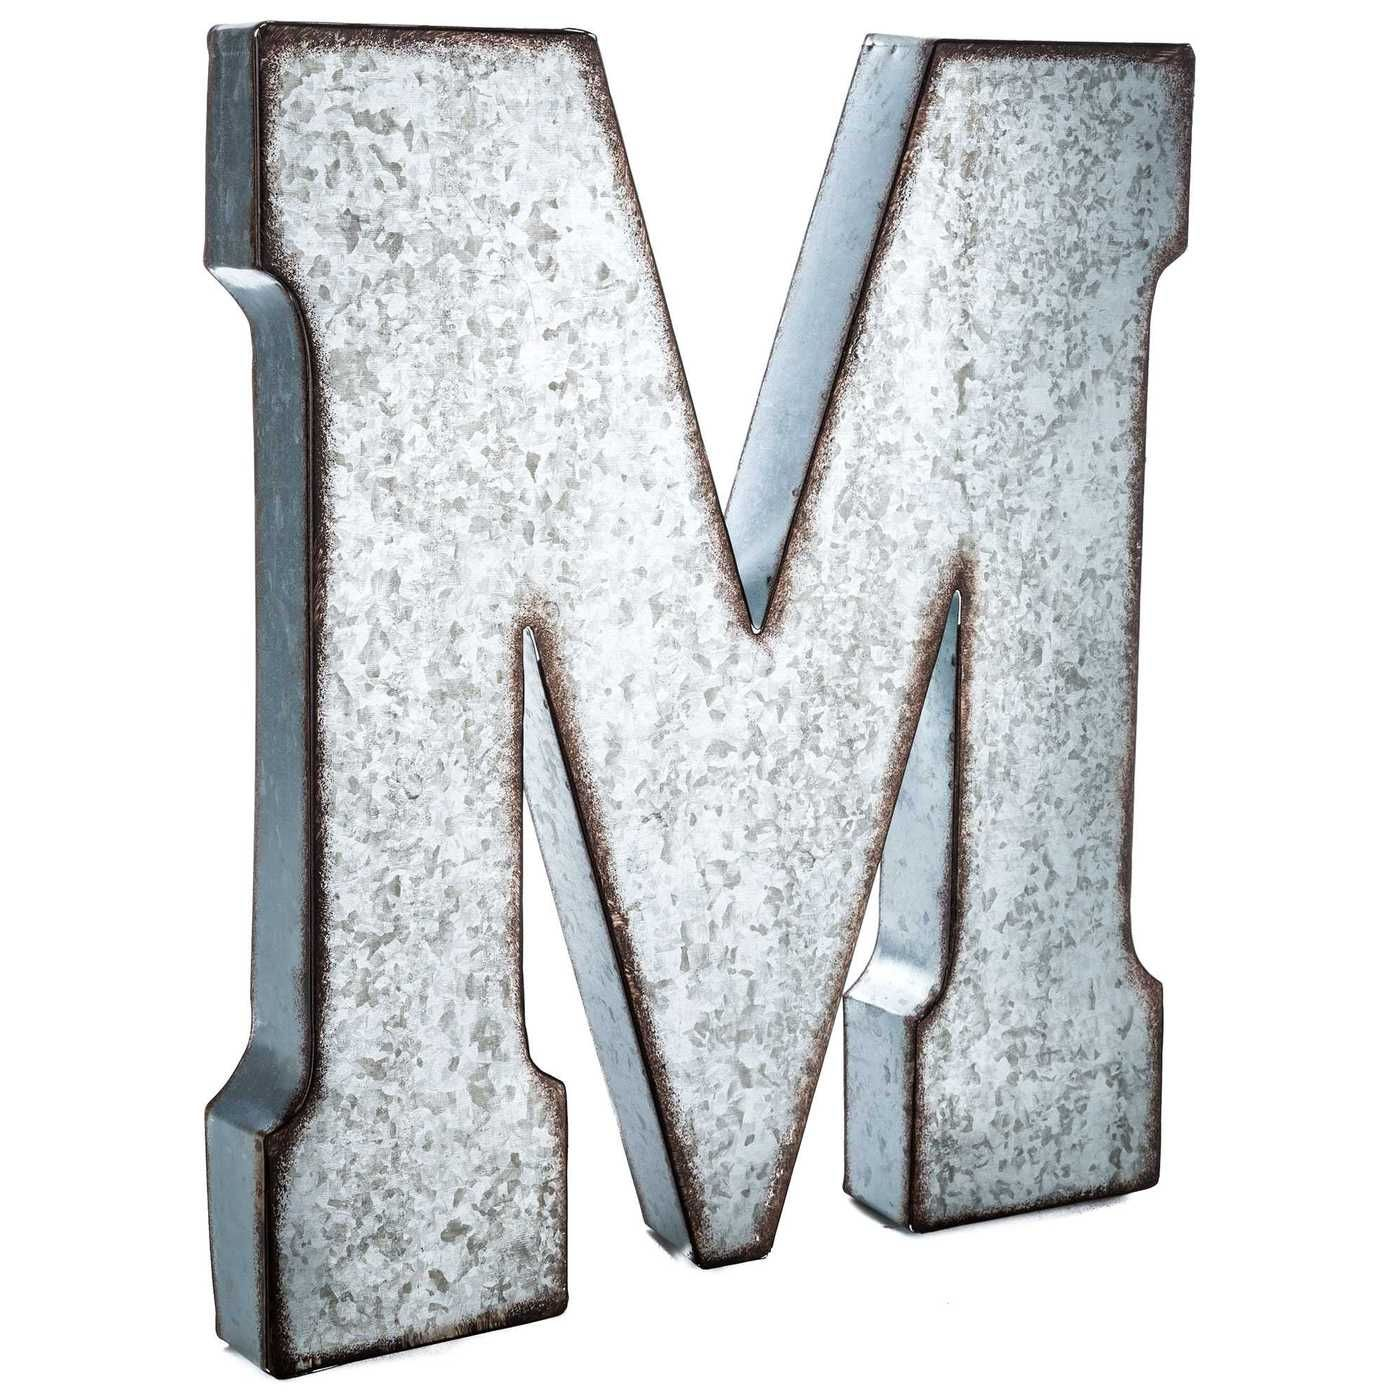 Galvanized Metal Letter Wall Decor M Metal Wall Letters Metal Letters Hobby Lobby Metal Letter Wall Decor